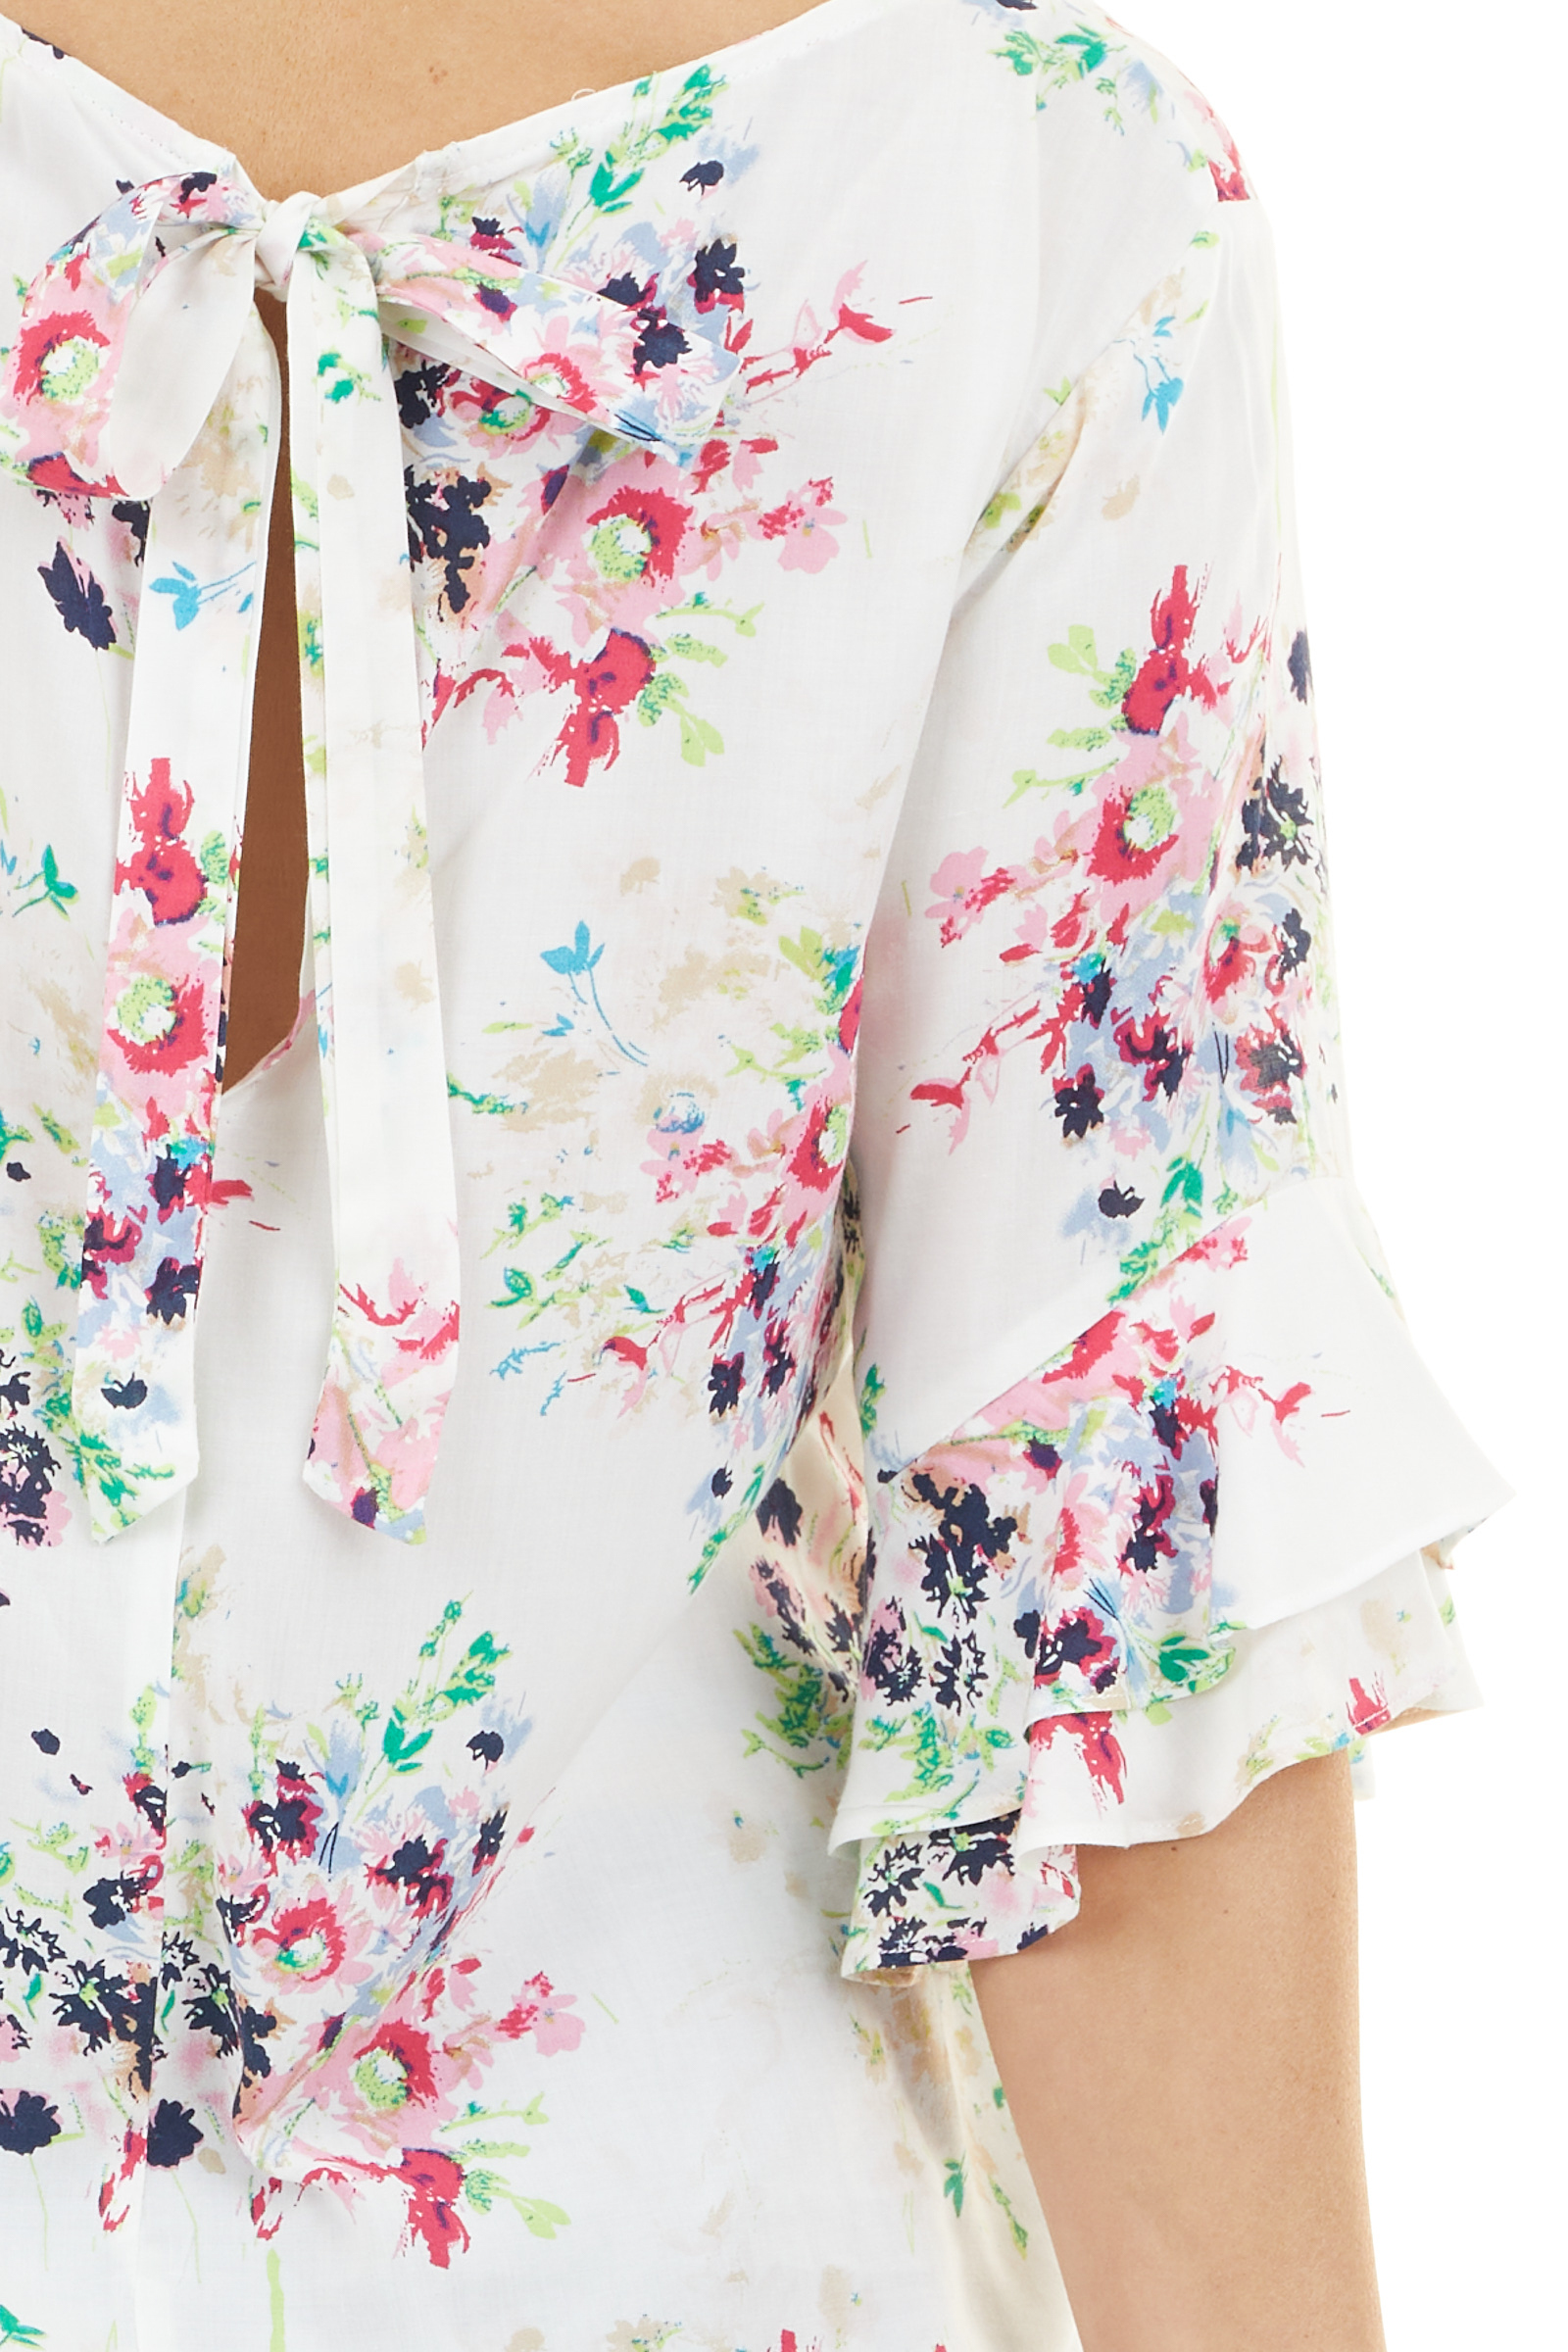 Daisy White Floral Top with Ruffled Sleeves and Back Tie